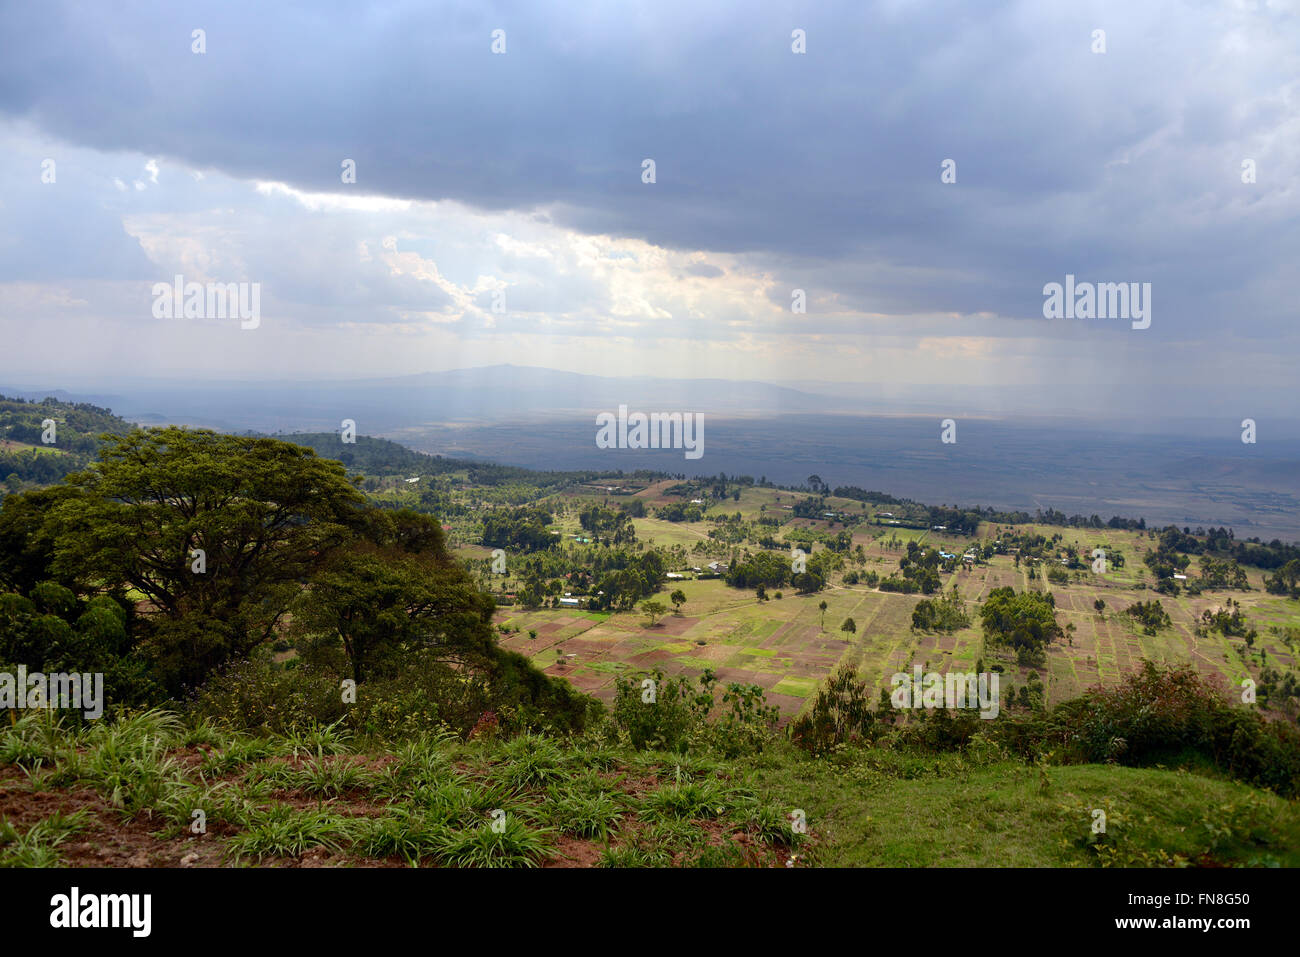 Africa: Kenya: The East African Rift Valley looking North West from Limuru over the farmed terraces towards the Stock Photo